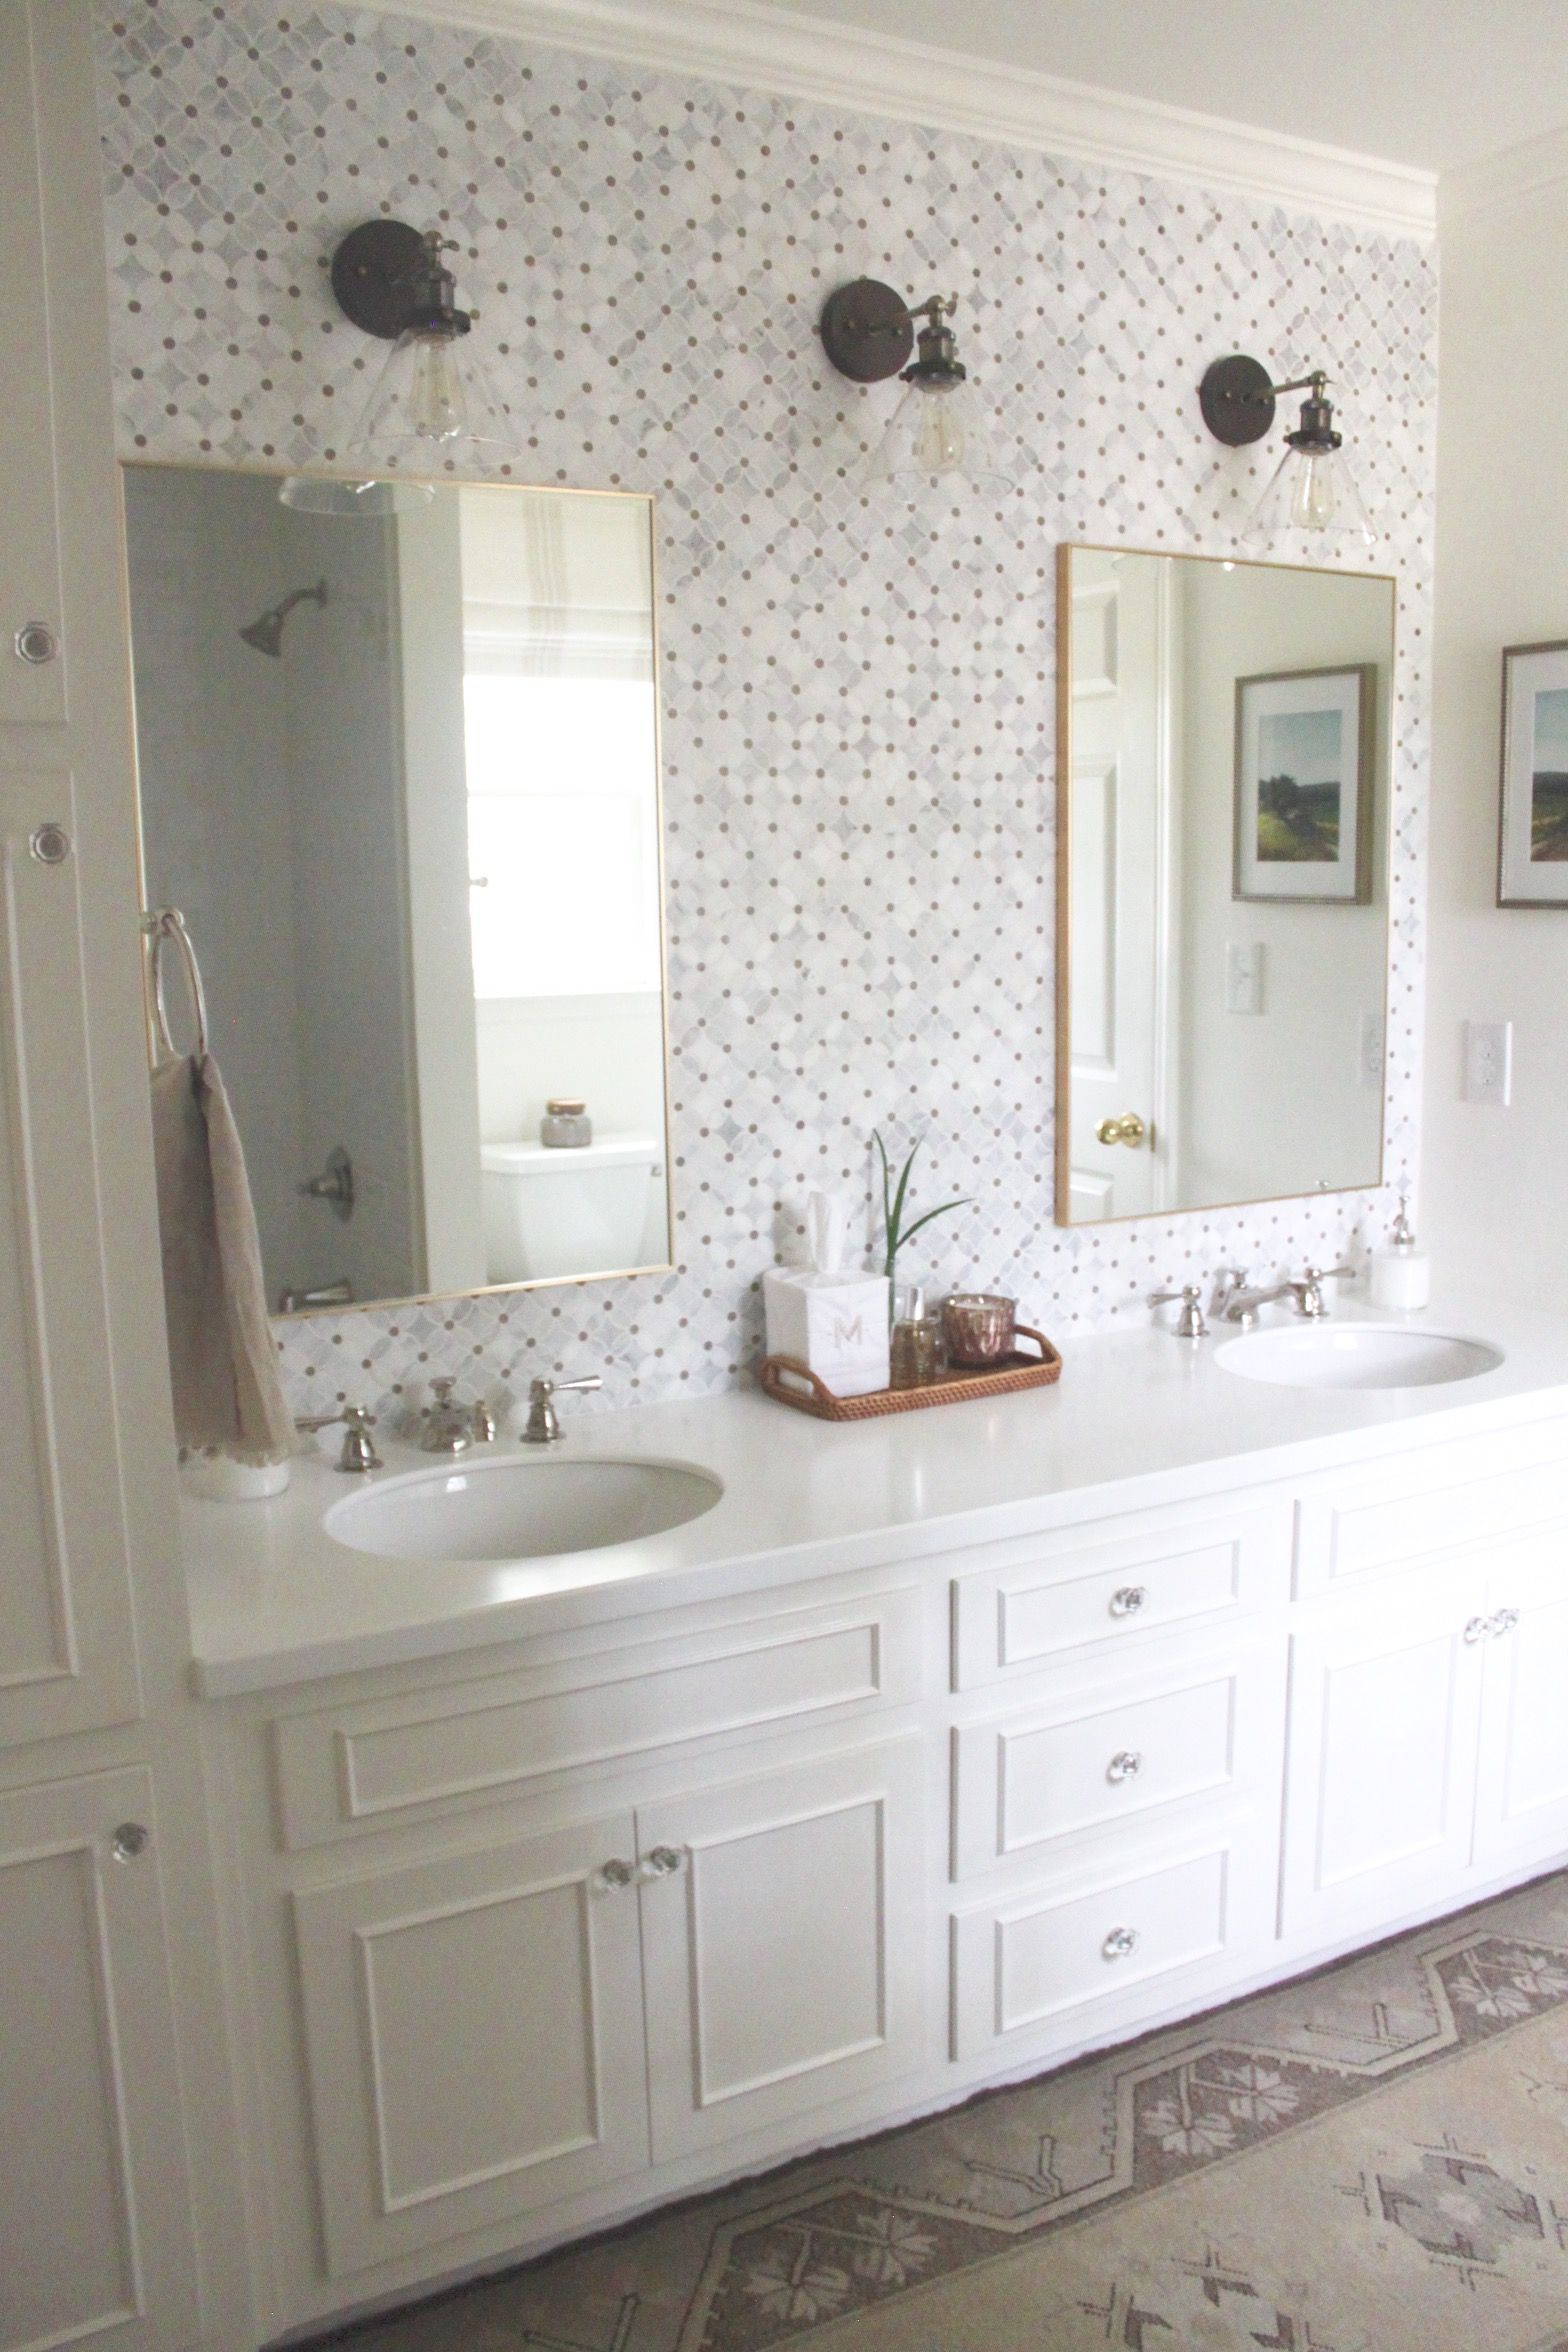 Traditional White Jack And Jill Bathroom Renovation Remodel Decor